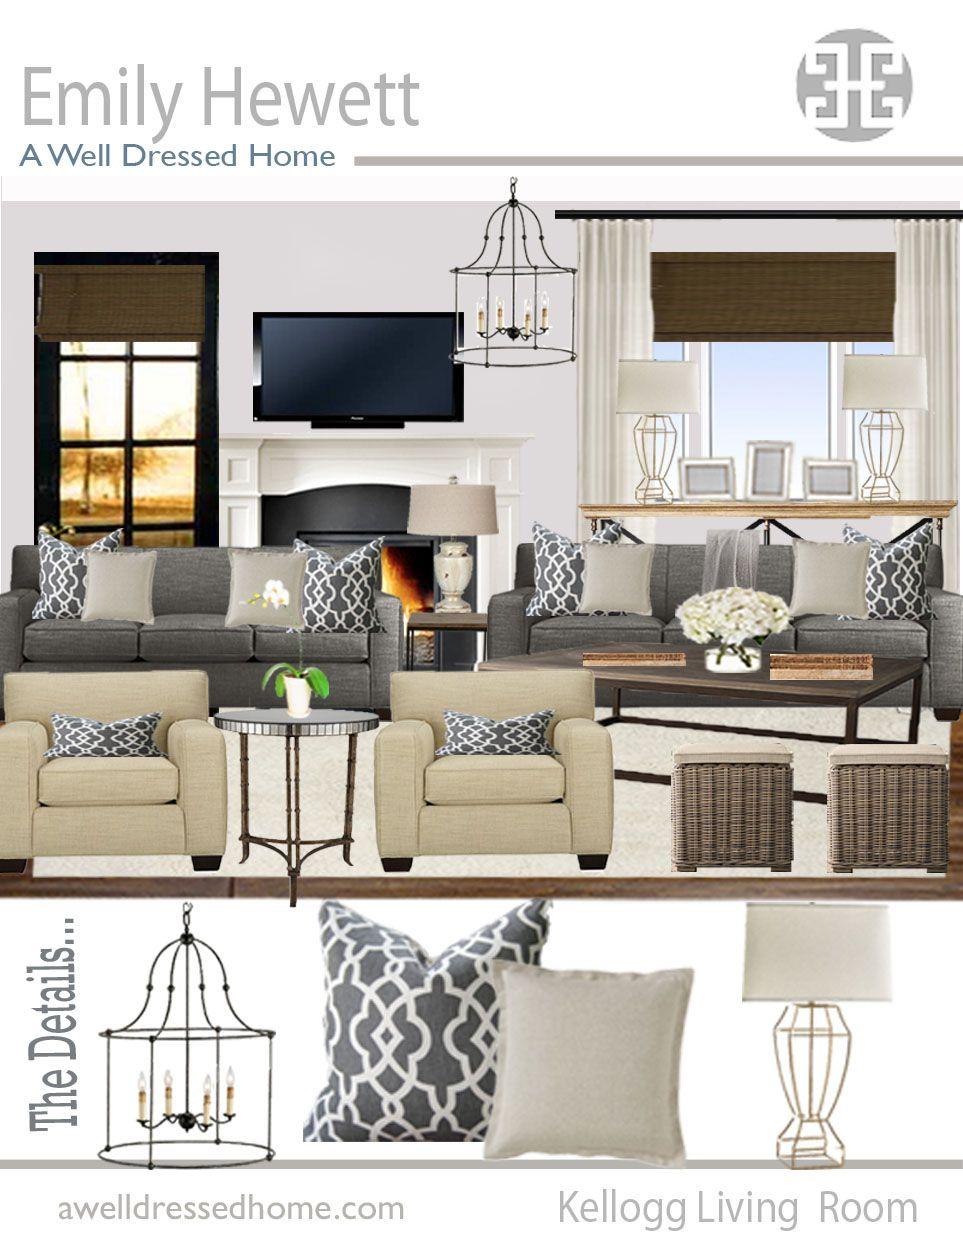 Design A Living Room Online For Free Fair Awdh Odb Kellogg Living Room Online Design Boardawdh  For The Decorating Design